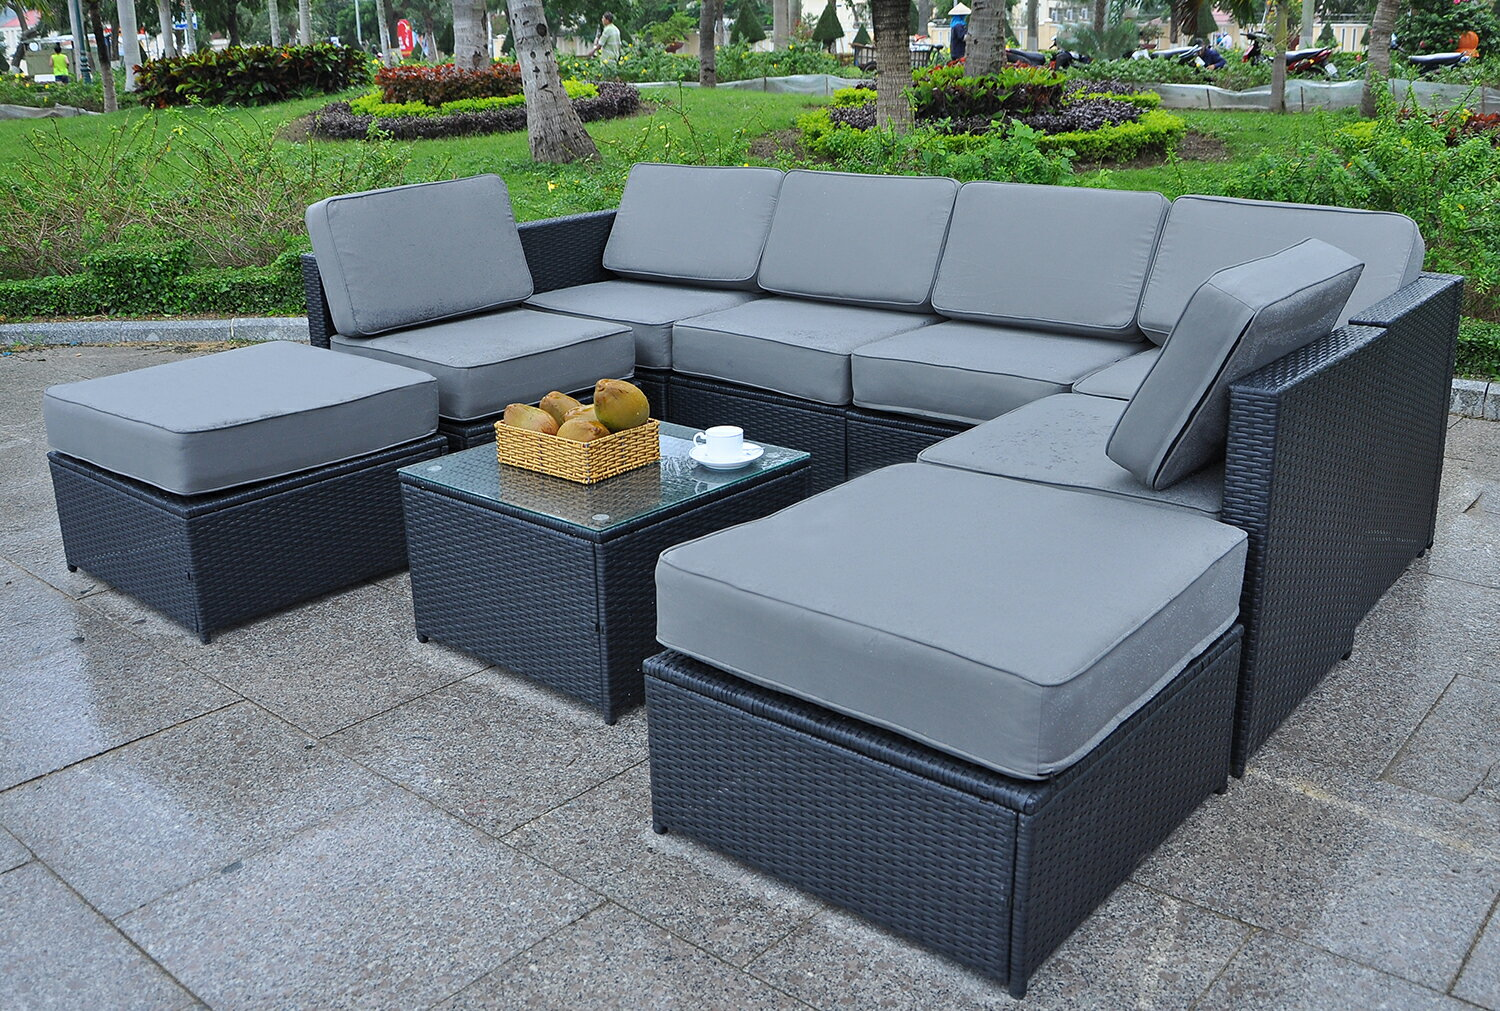 MCombo 9pcs Black Wicker White Cushion Patio Sectional Outdoor Sofa  Furniture set 6085-1009EY